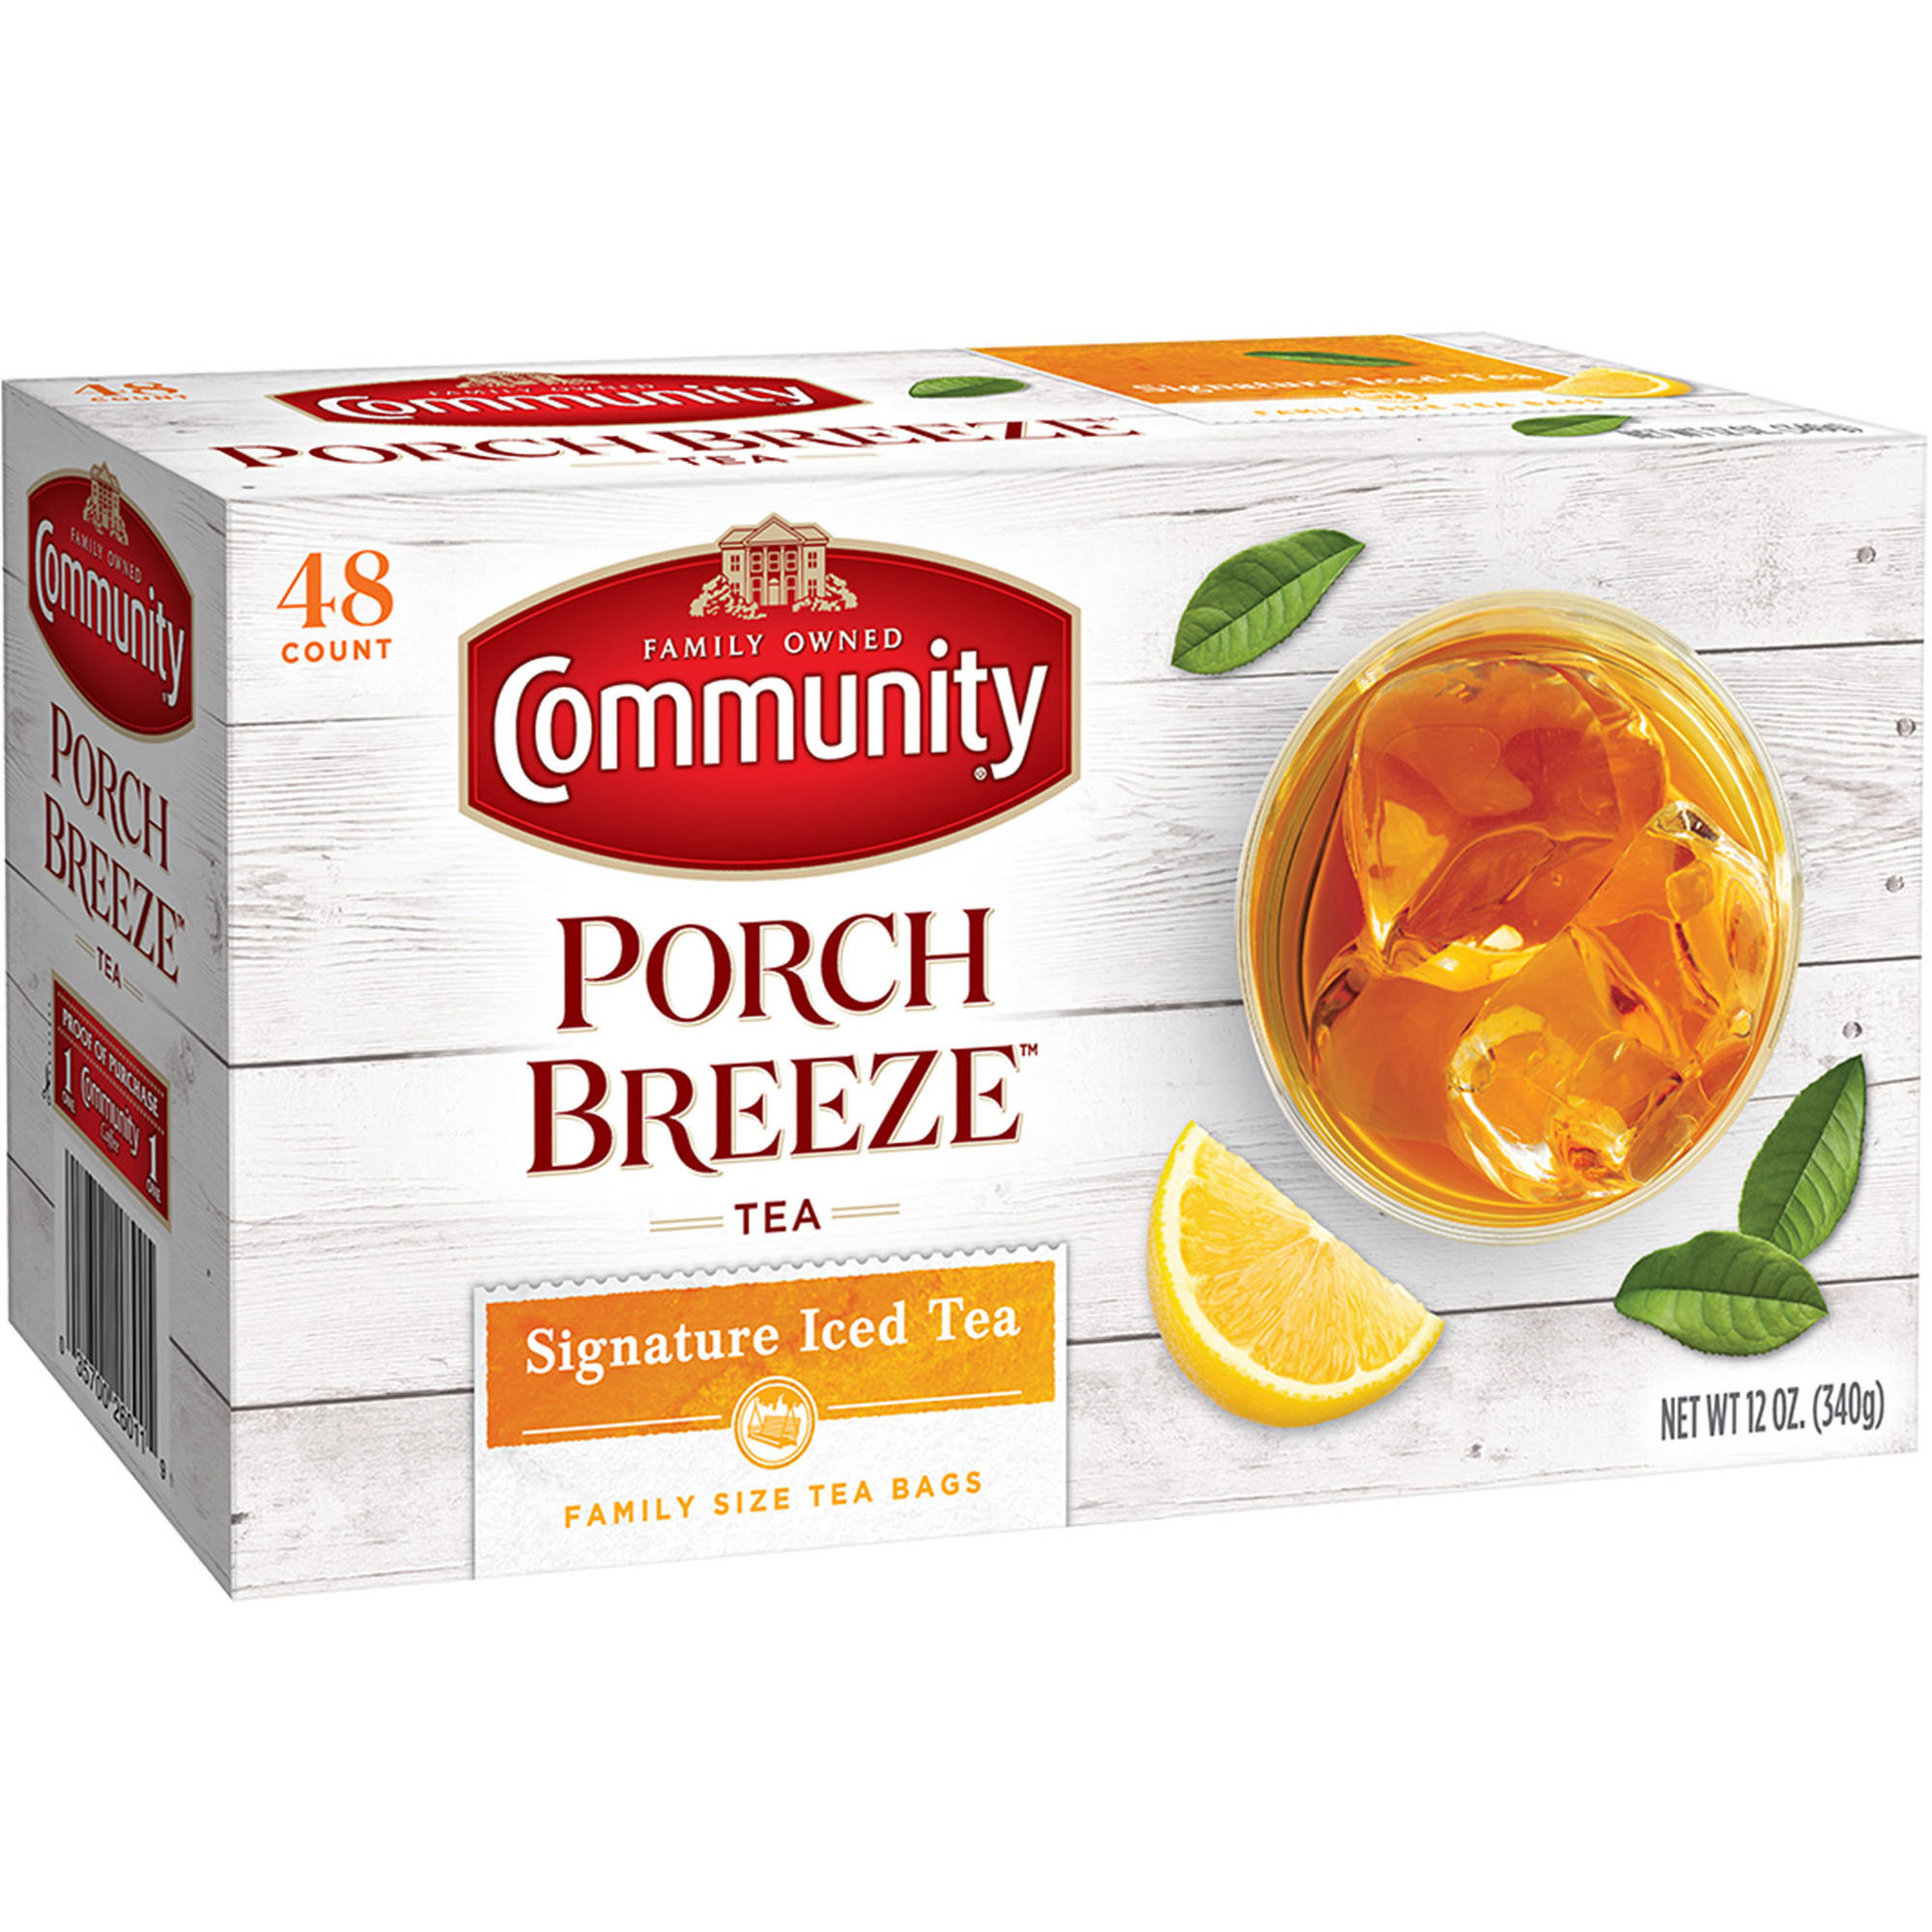 Community Family Size Tea Bags, 12 oz, 48 count